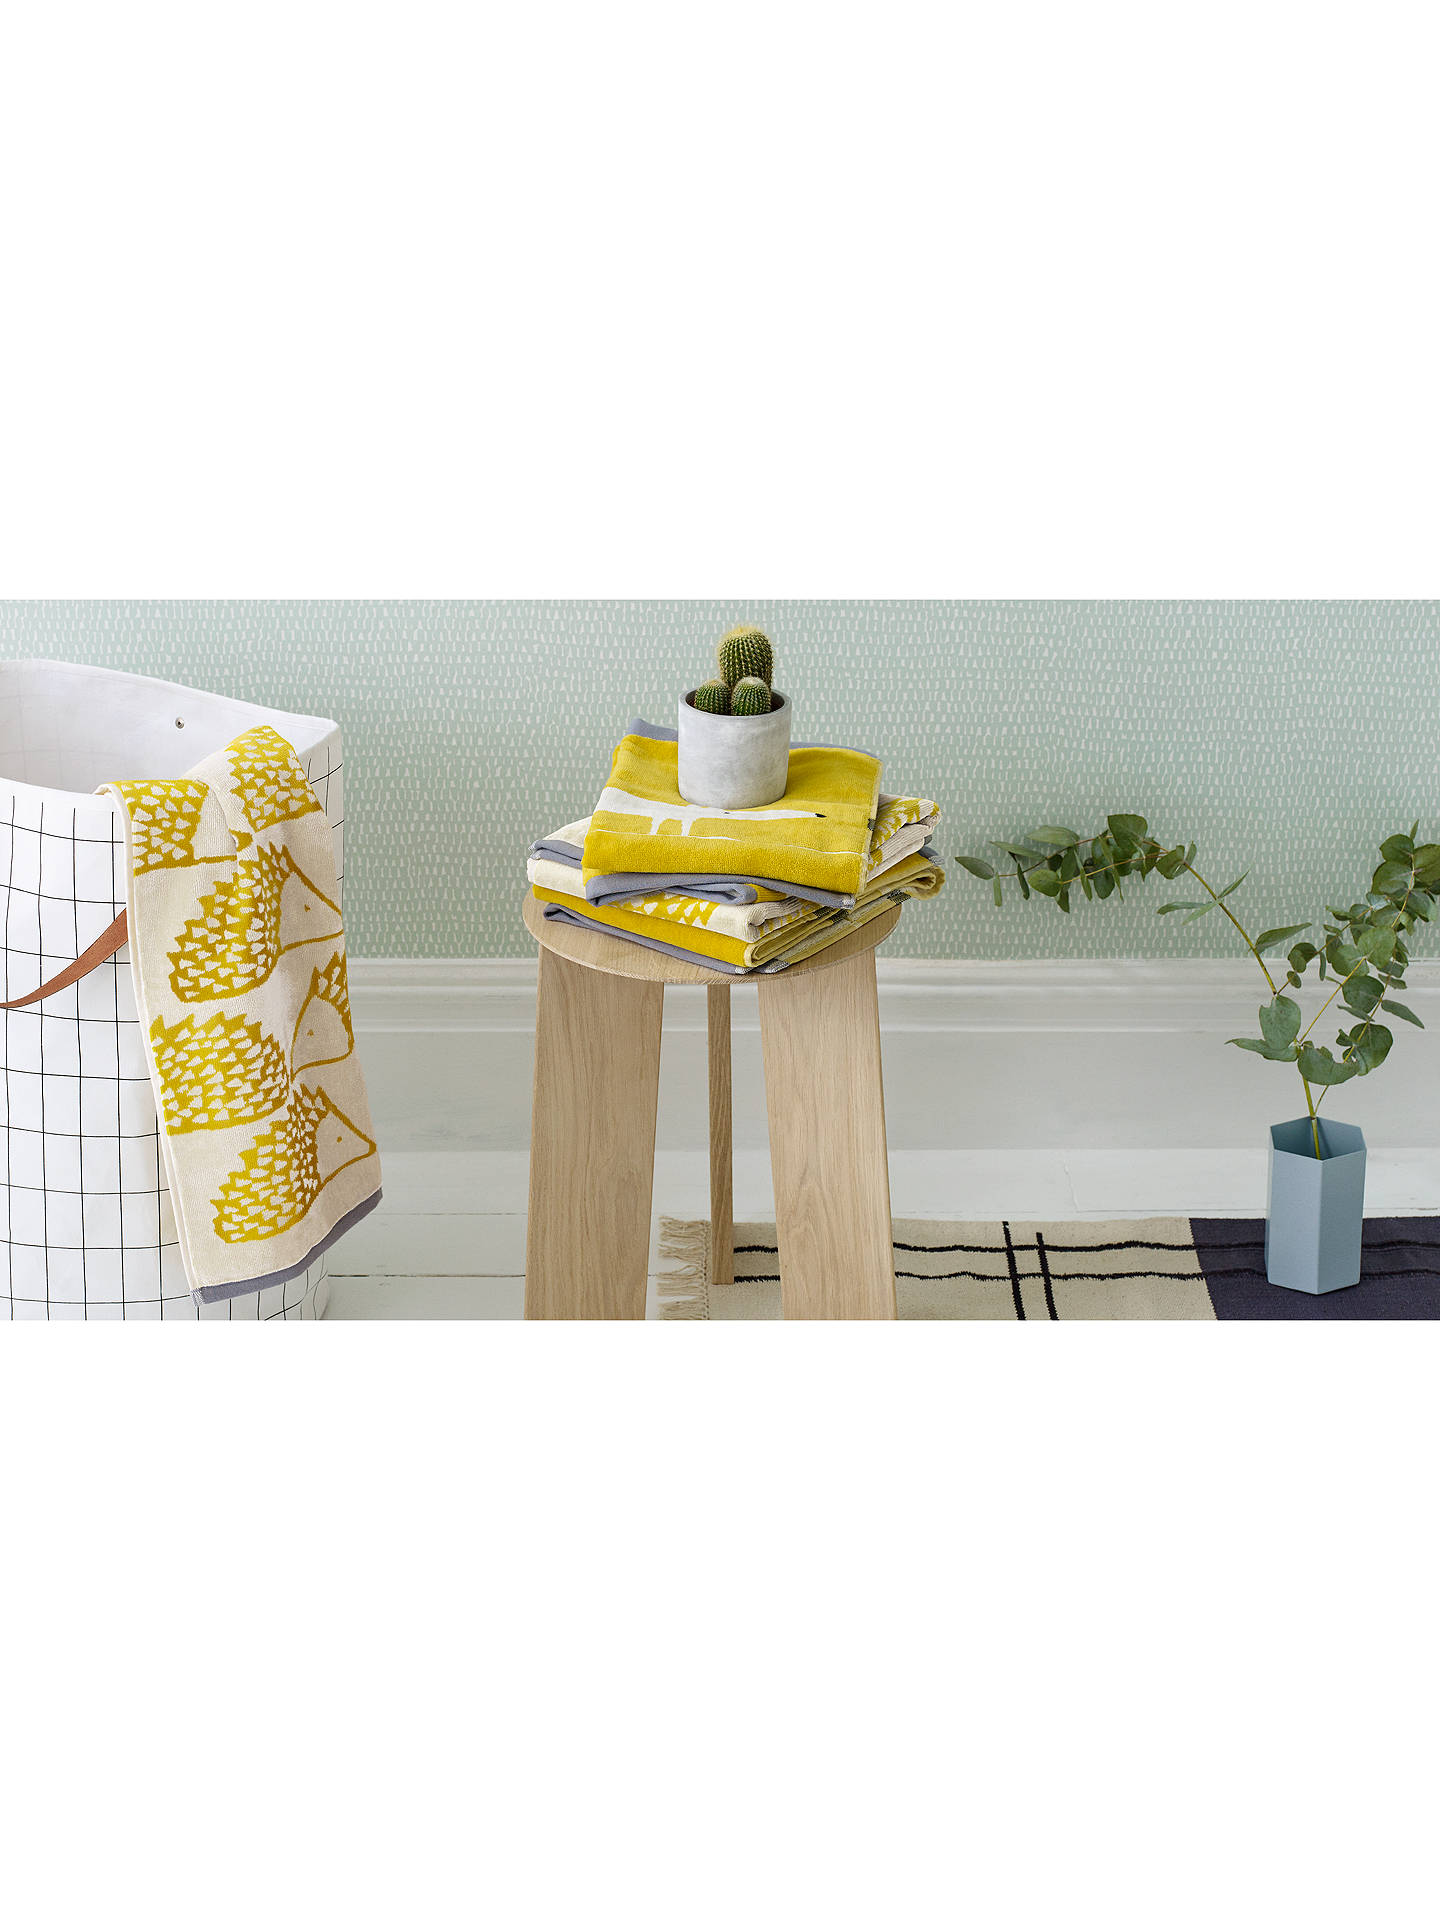 Buy Scion Spike Guest Towel, Mustard Online at johnlewis.com